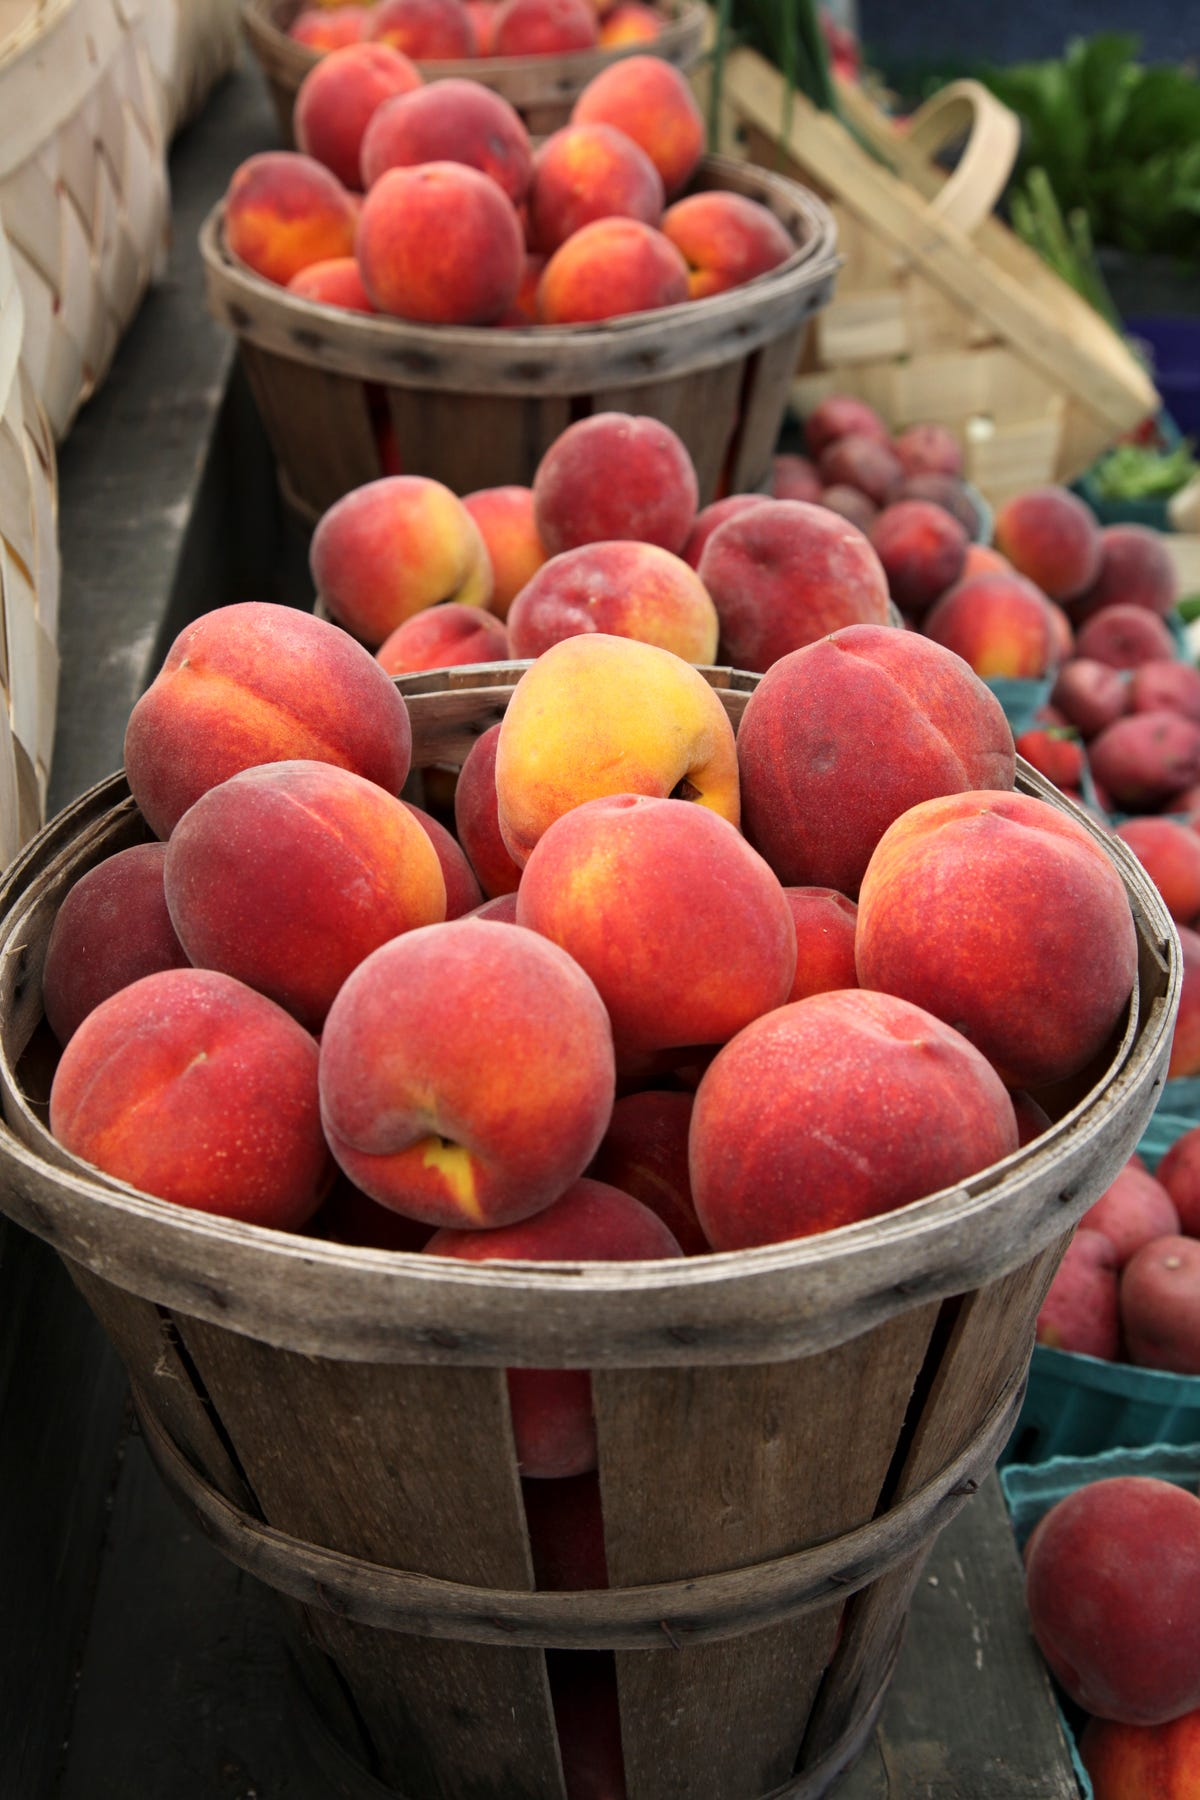 Tree-Ripe says it will have fewer peaches for Wisconsin